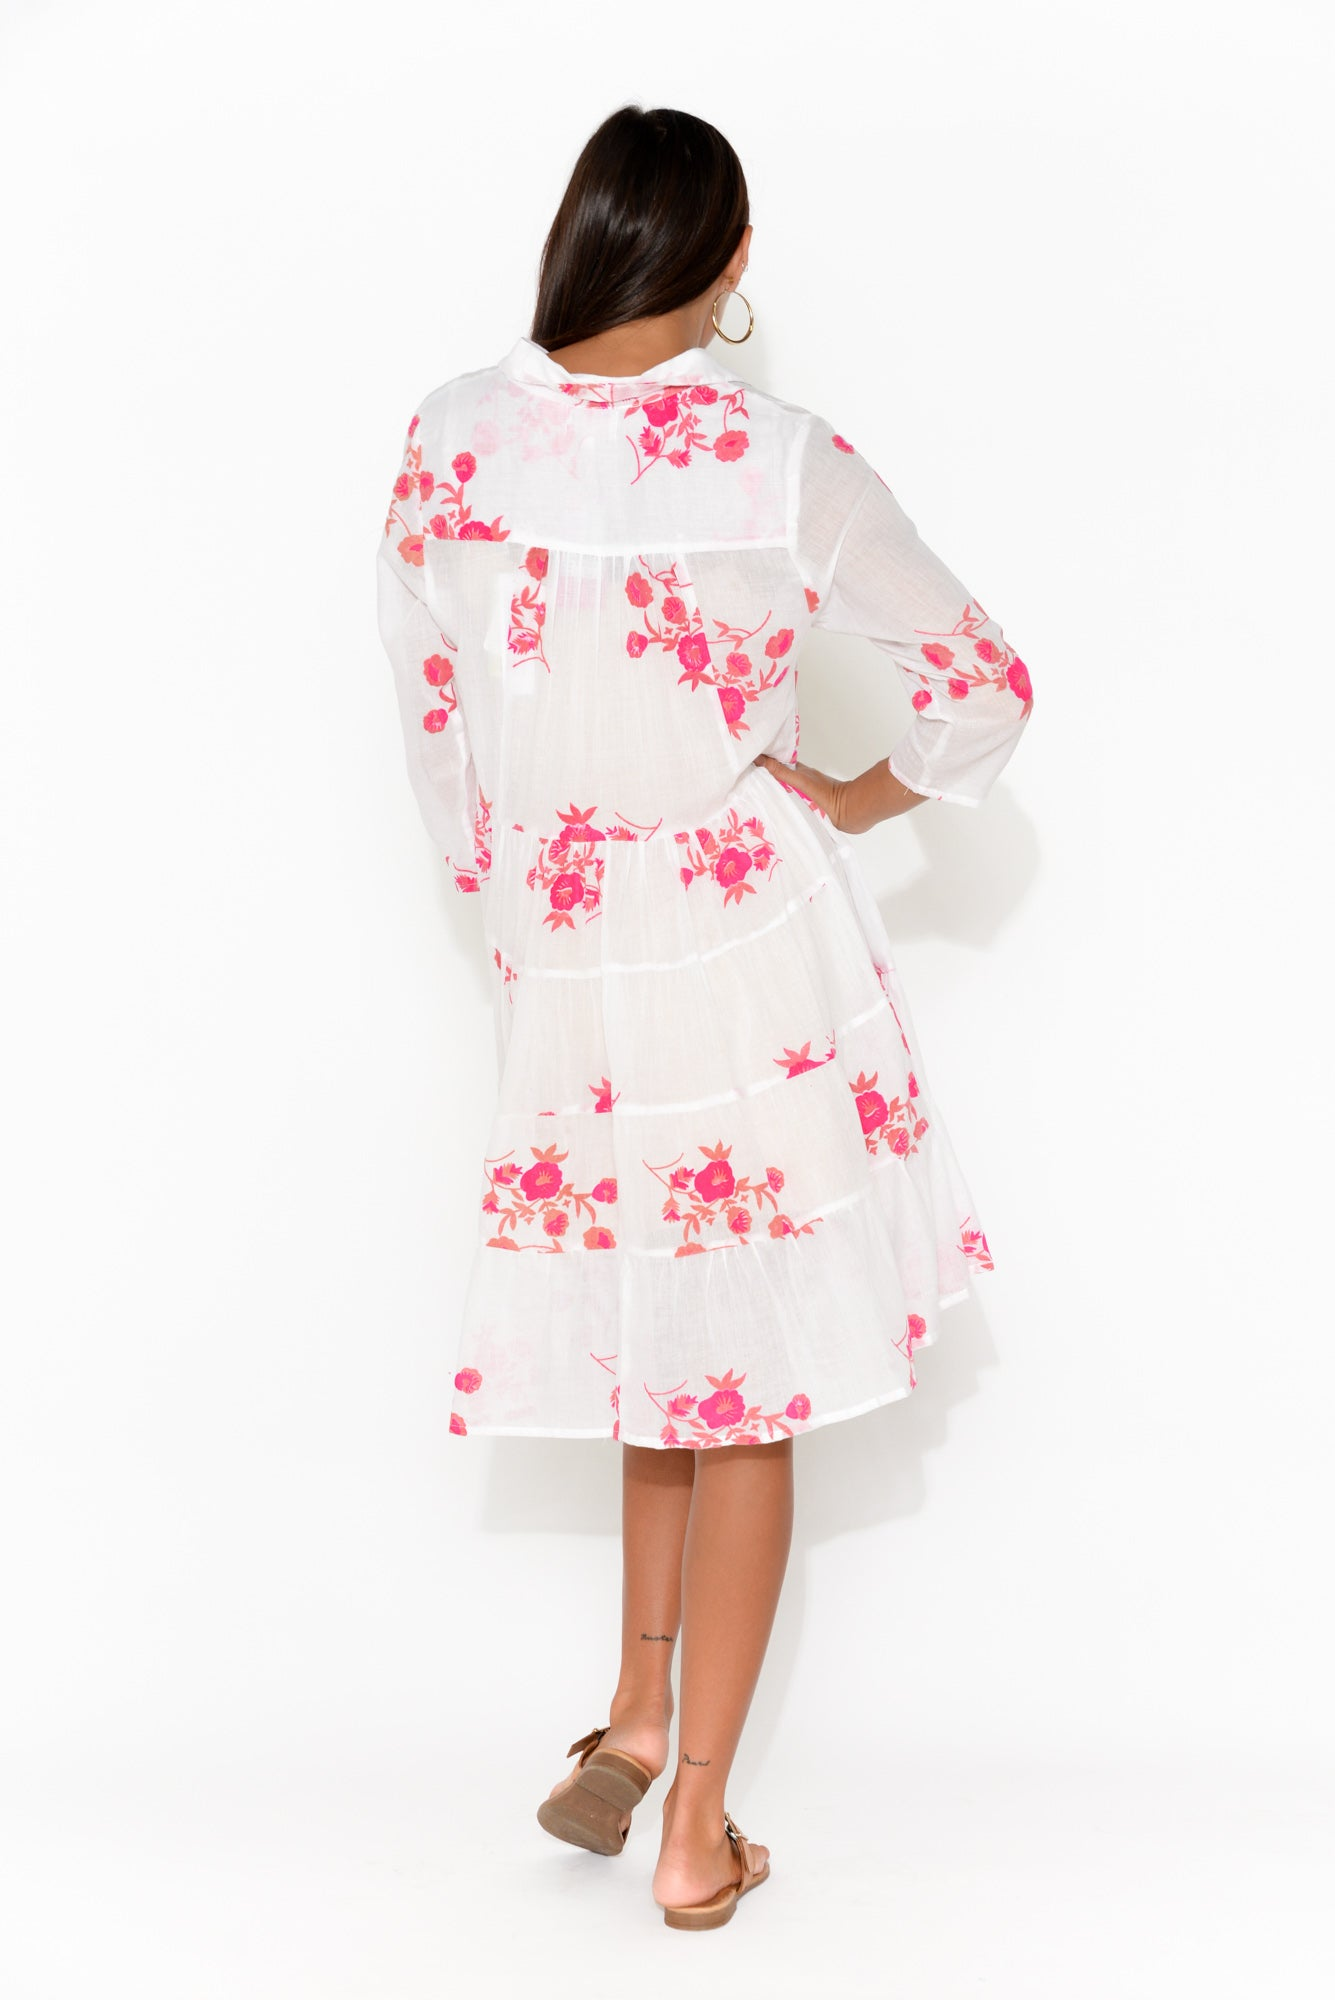 Naomi White Floral Button Down Dress